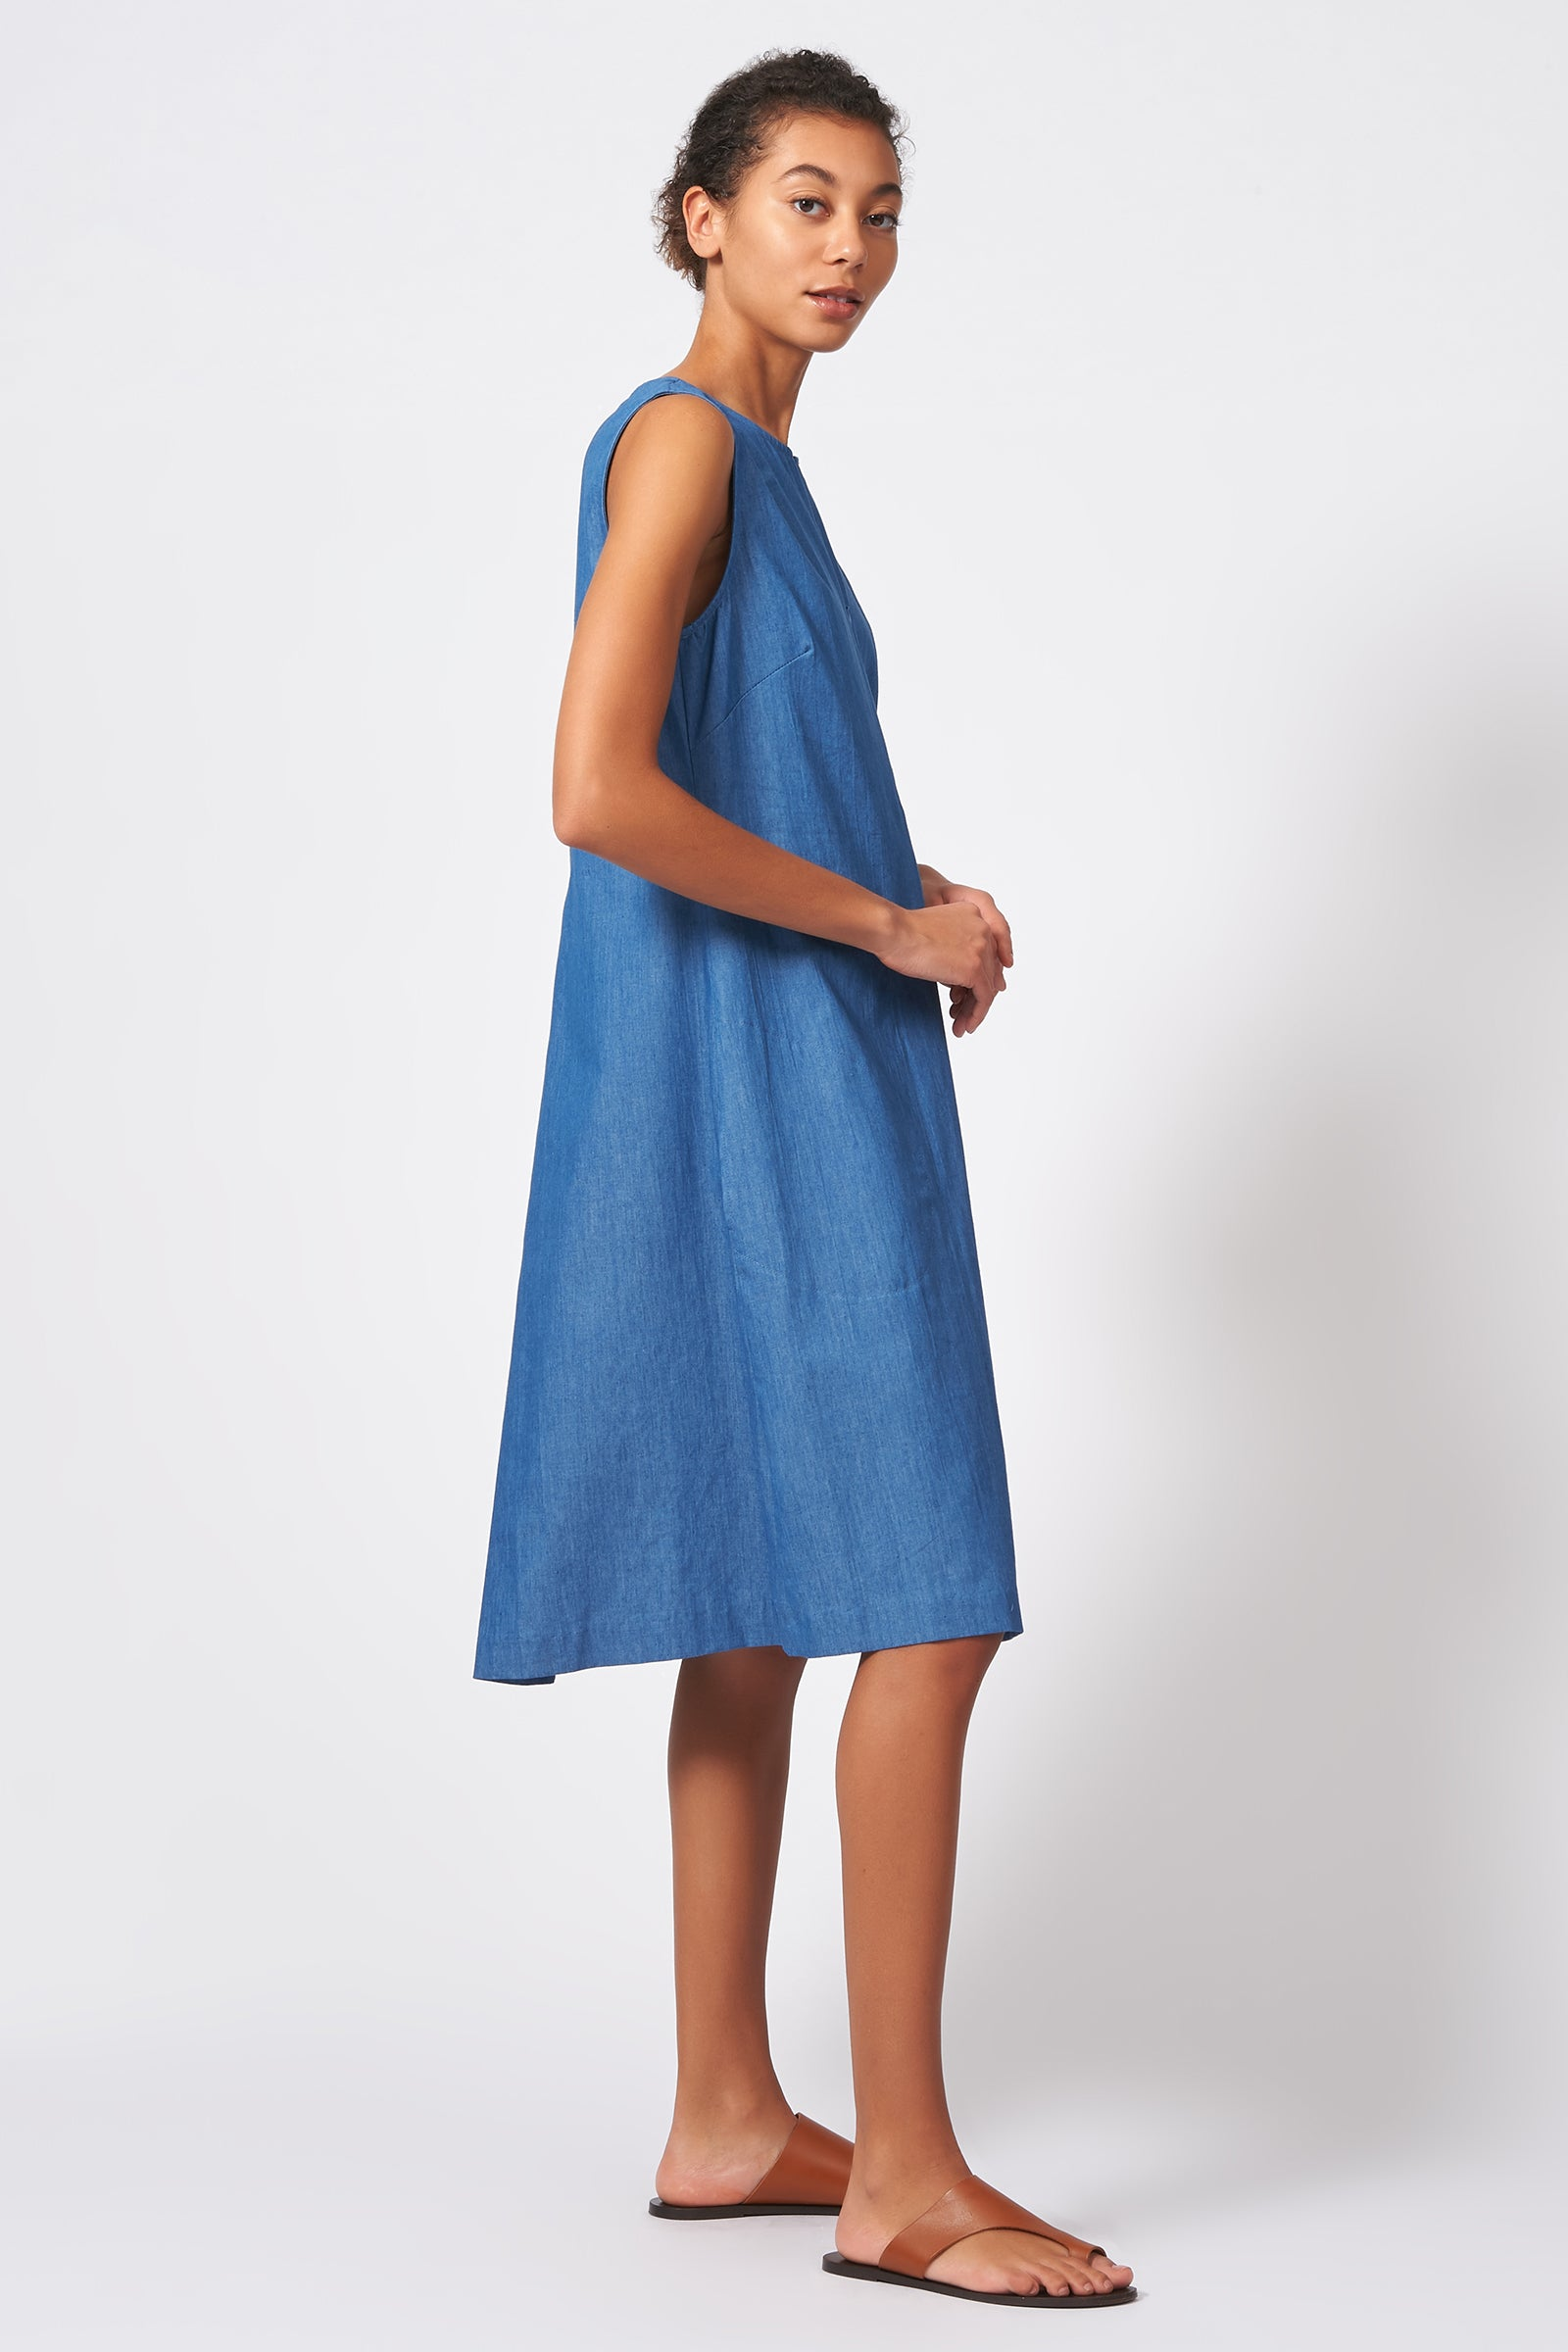 Kal Rieman Pleat Front Zip Dress in Light Indigo on Model Full Side View